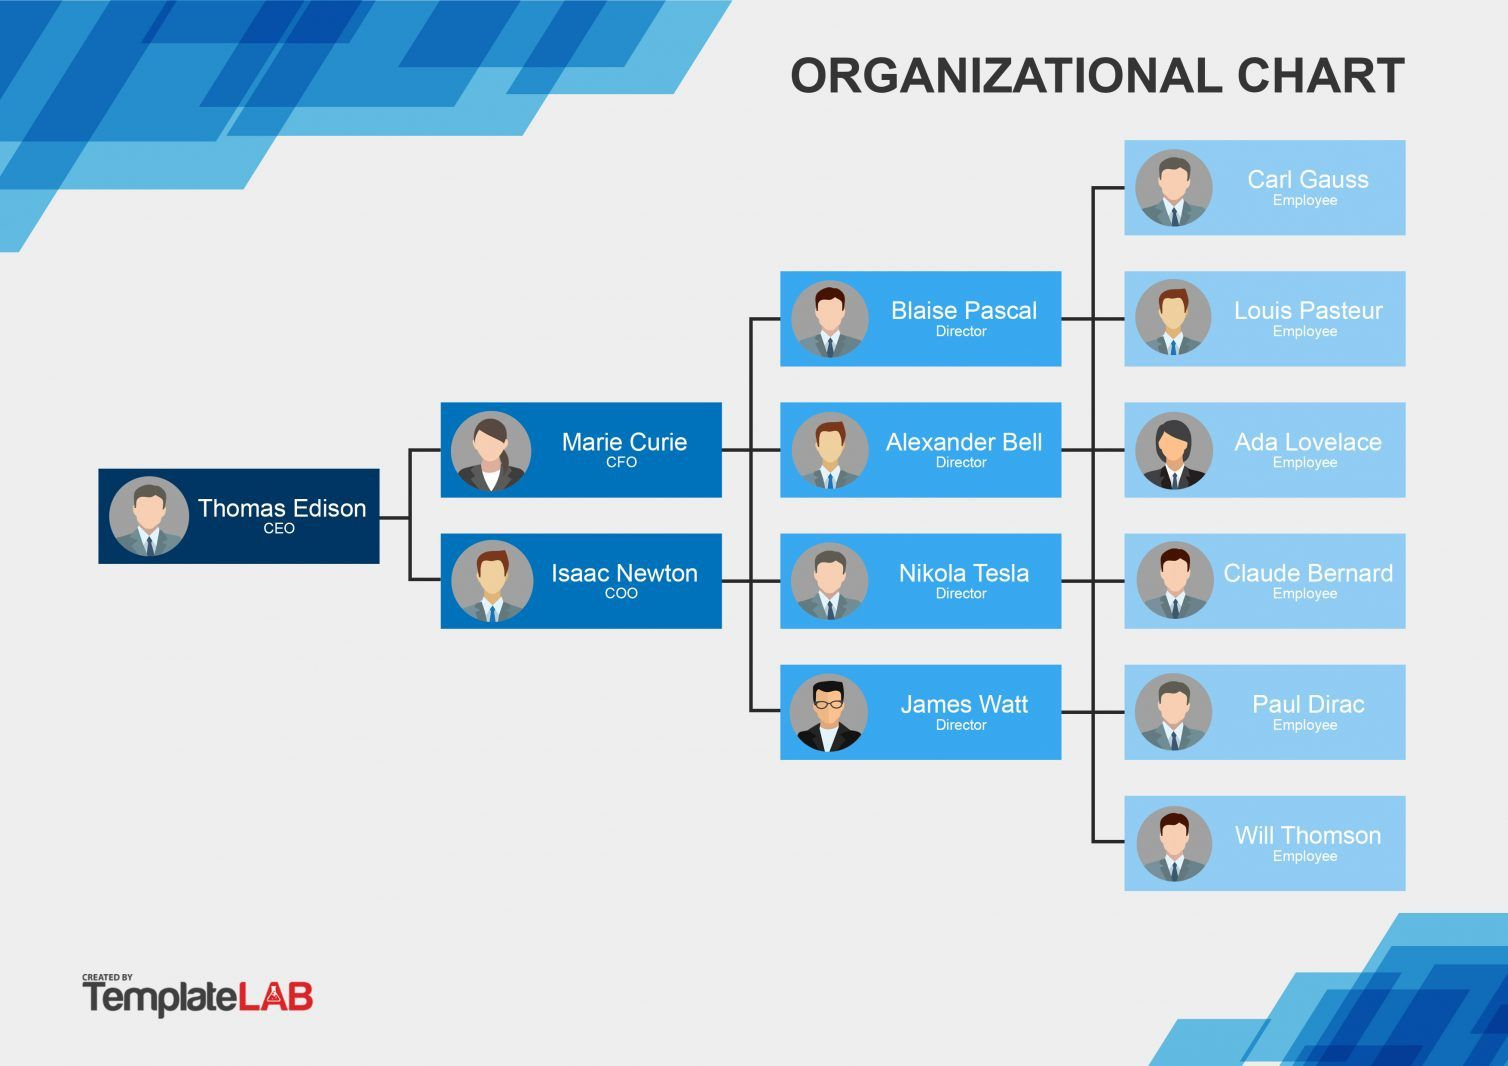 009 Formidable M Word Org Chart Template High Resolution  Organizational Free DownloadFull